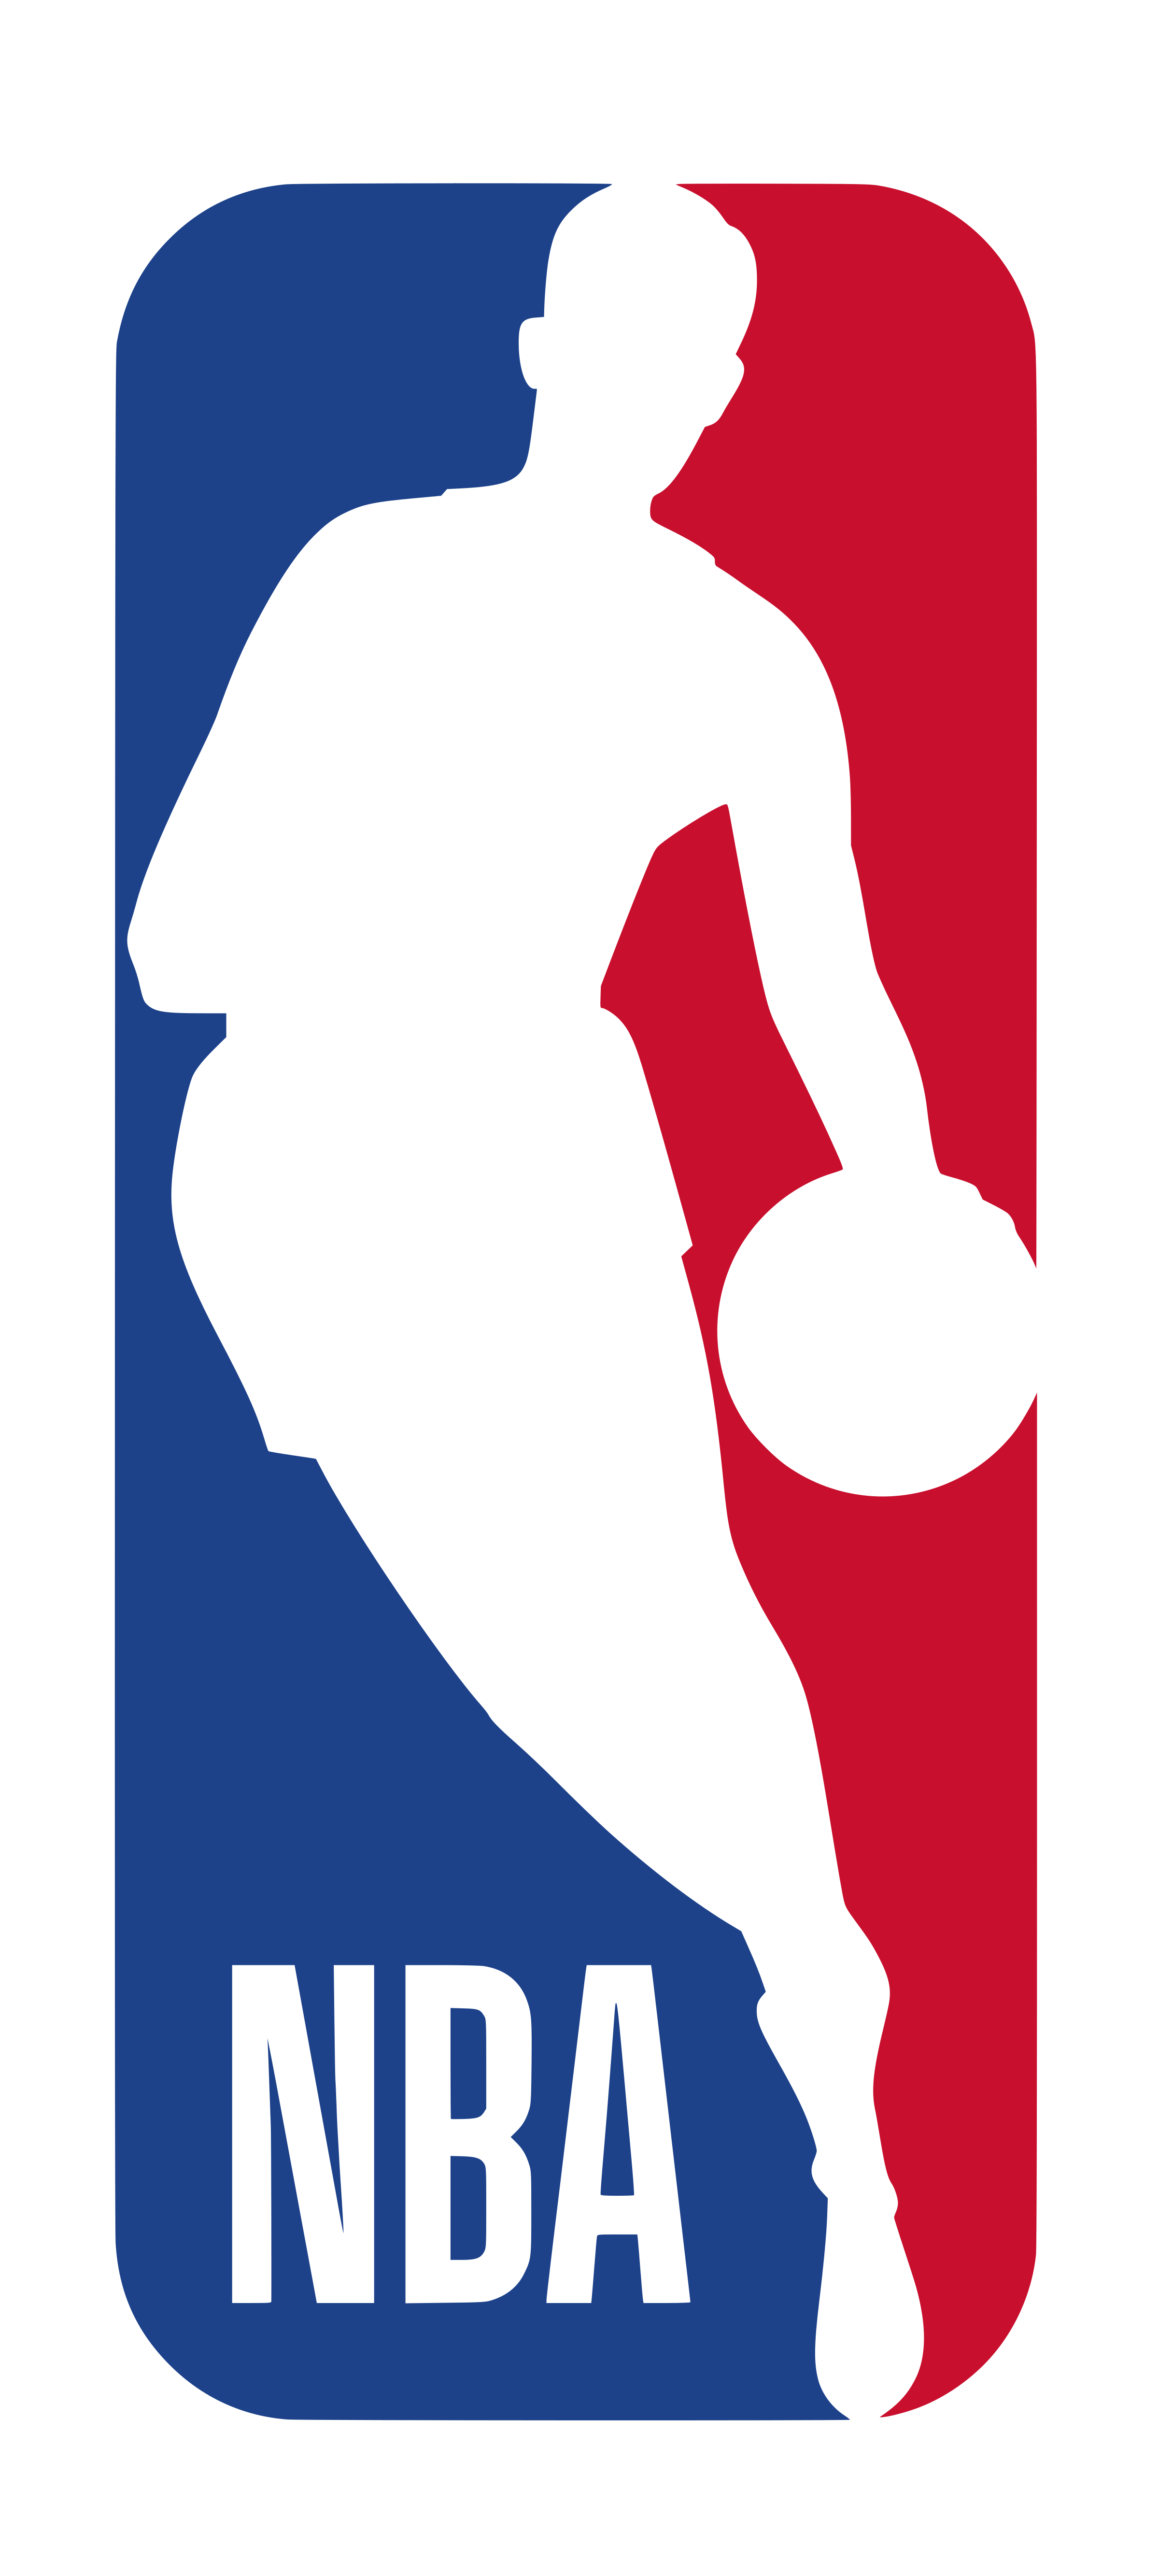 NBA - Temporada regular 1